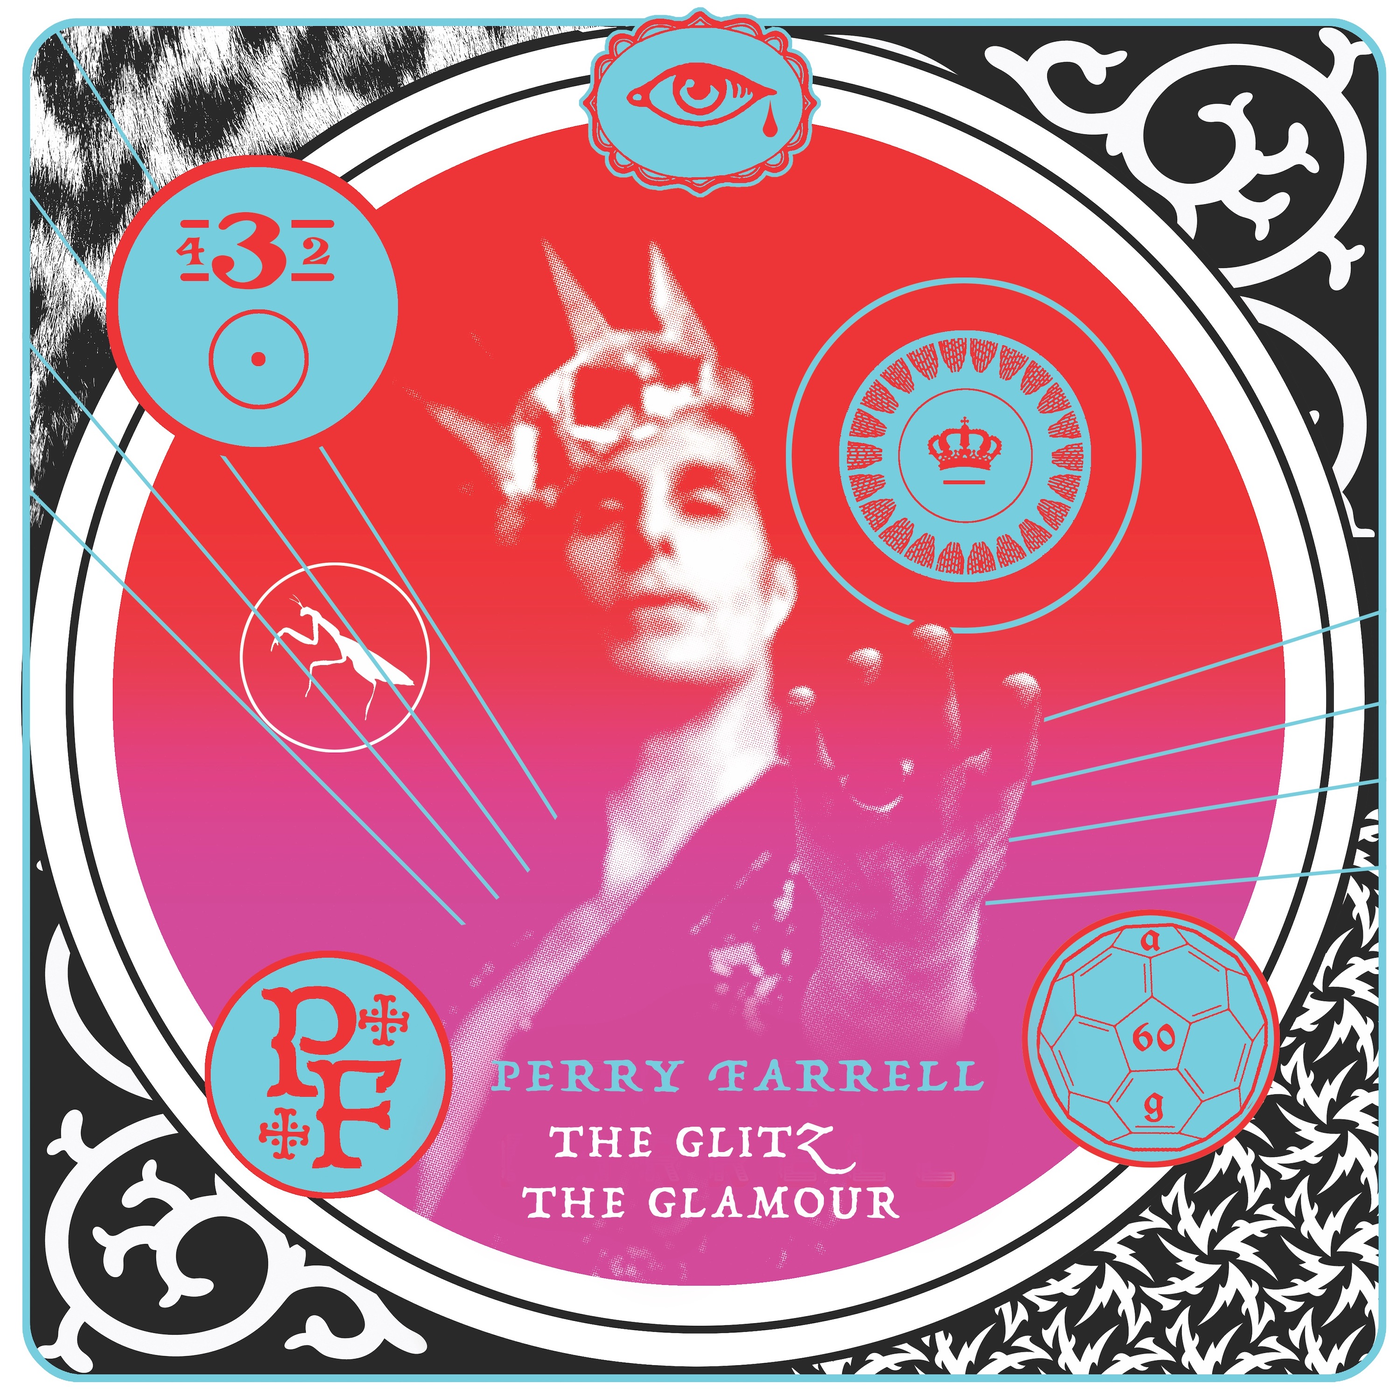 Perry Farrell - The Glitz; The Glamour Limited Edition 8xCD Box Set